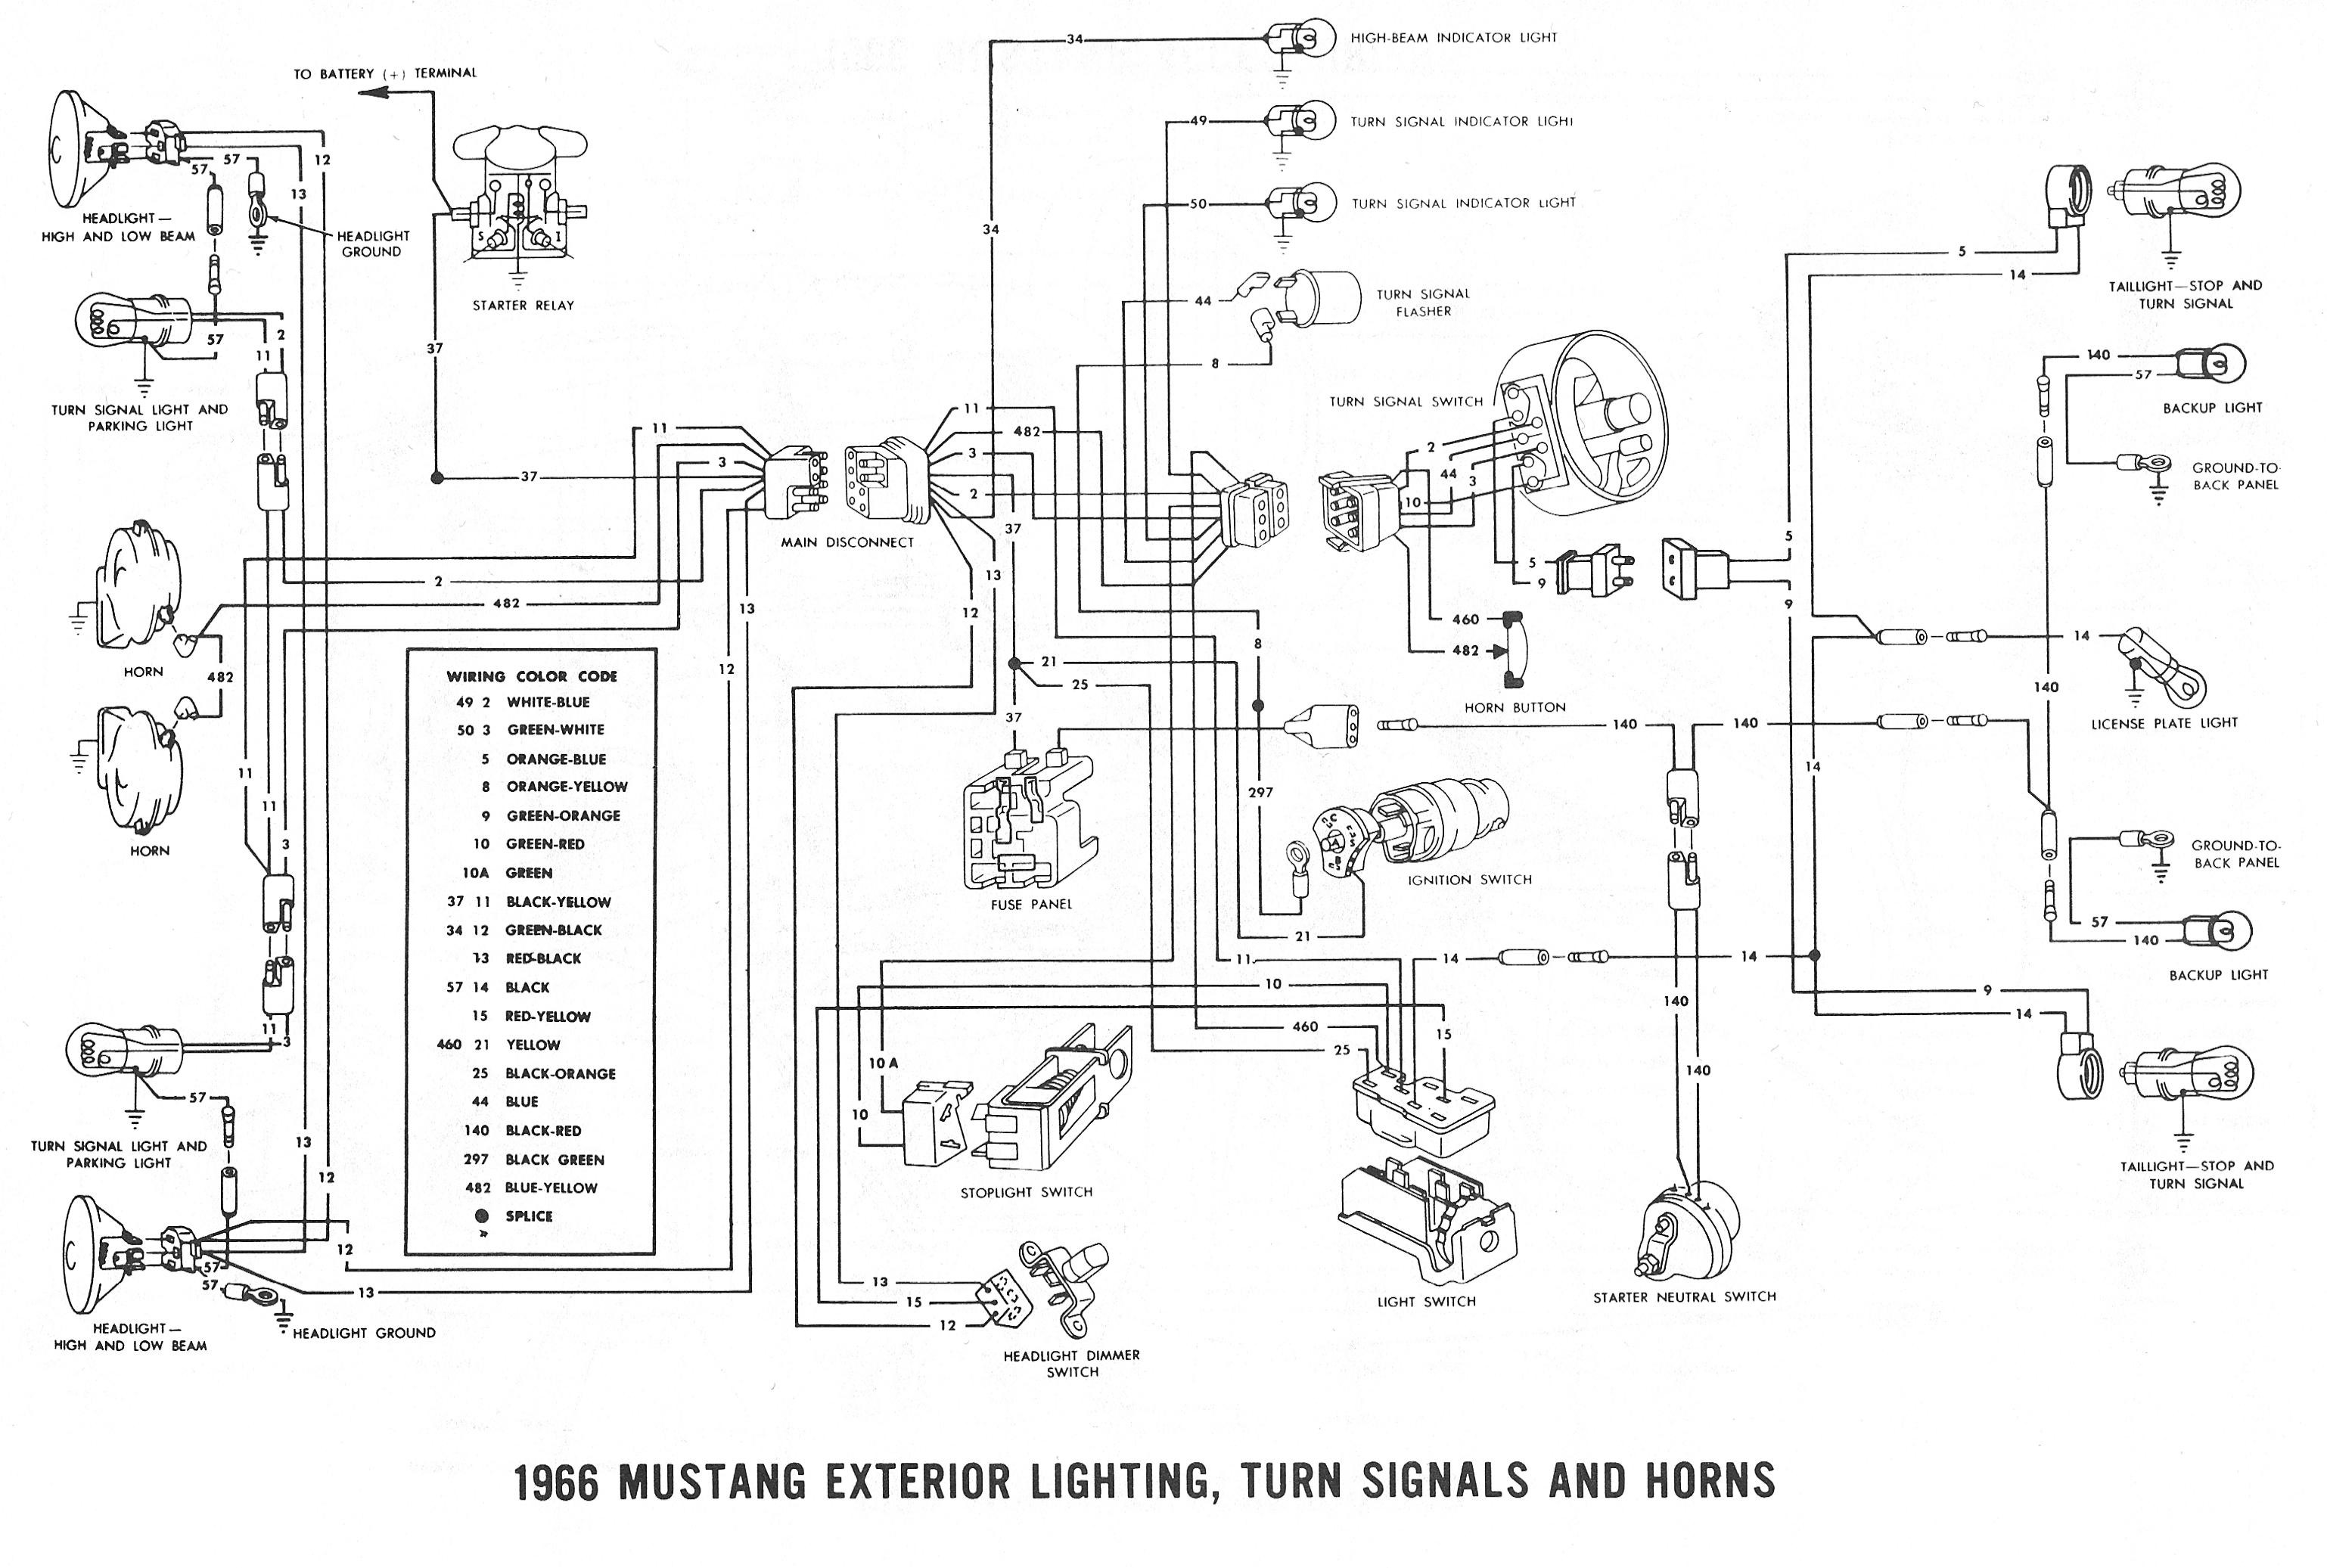 Wiring Diagram Signs | Wiring Diagram Database on bar diagram, platform diagram, land description diagram, conversation diagram, chair diagram, aluminum diagram, couch diagram, steel diagram, theater diagram, political diagram, section diagram, recliner diagram, wood diagram, social diagram, mirror diagram, power diagram, artery vs vein diagram, service diagram, server diagram, furniture diagram,